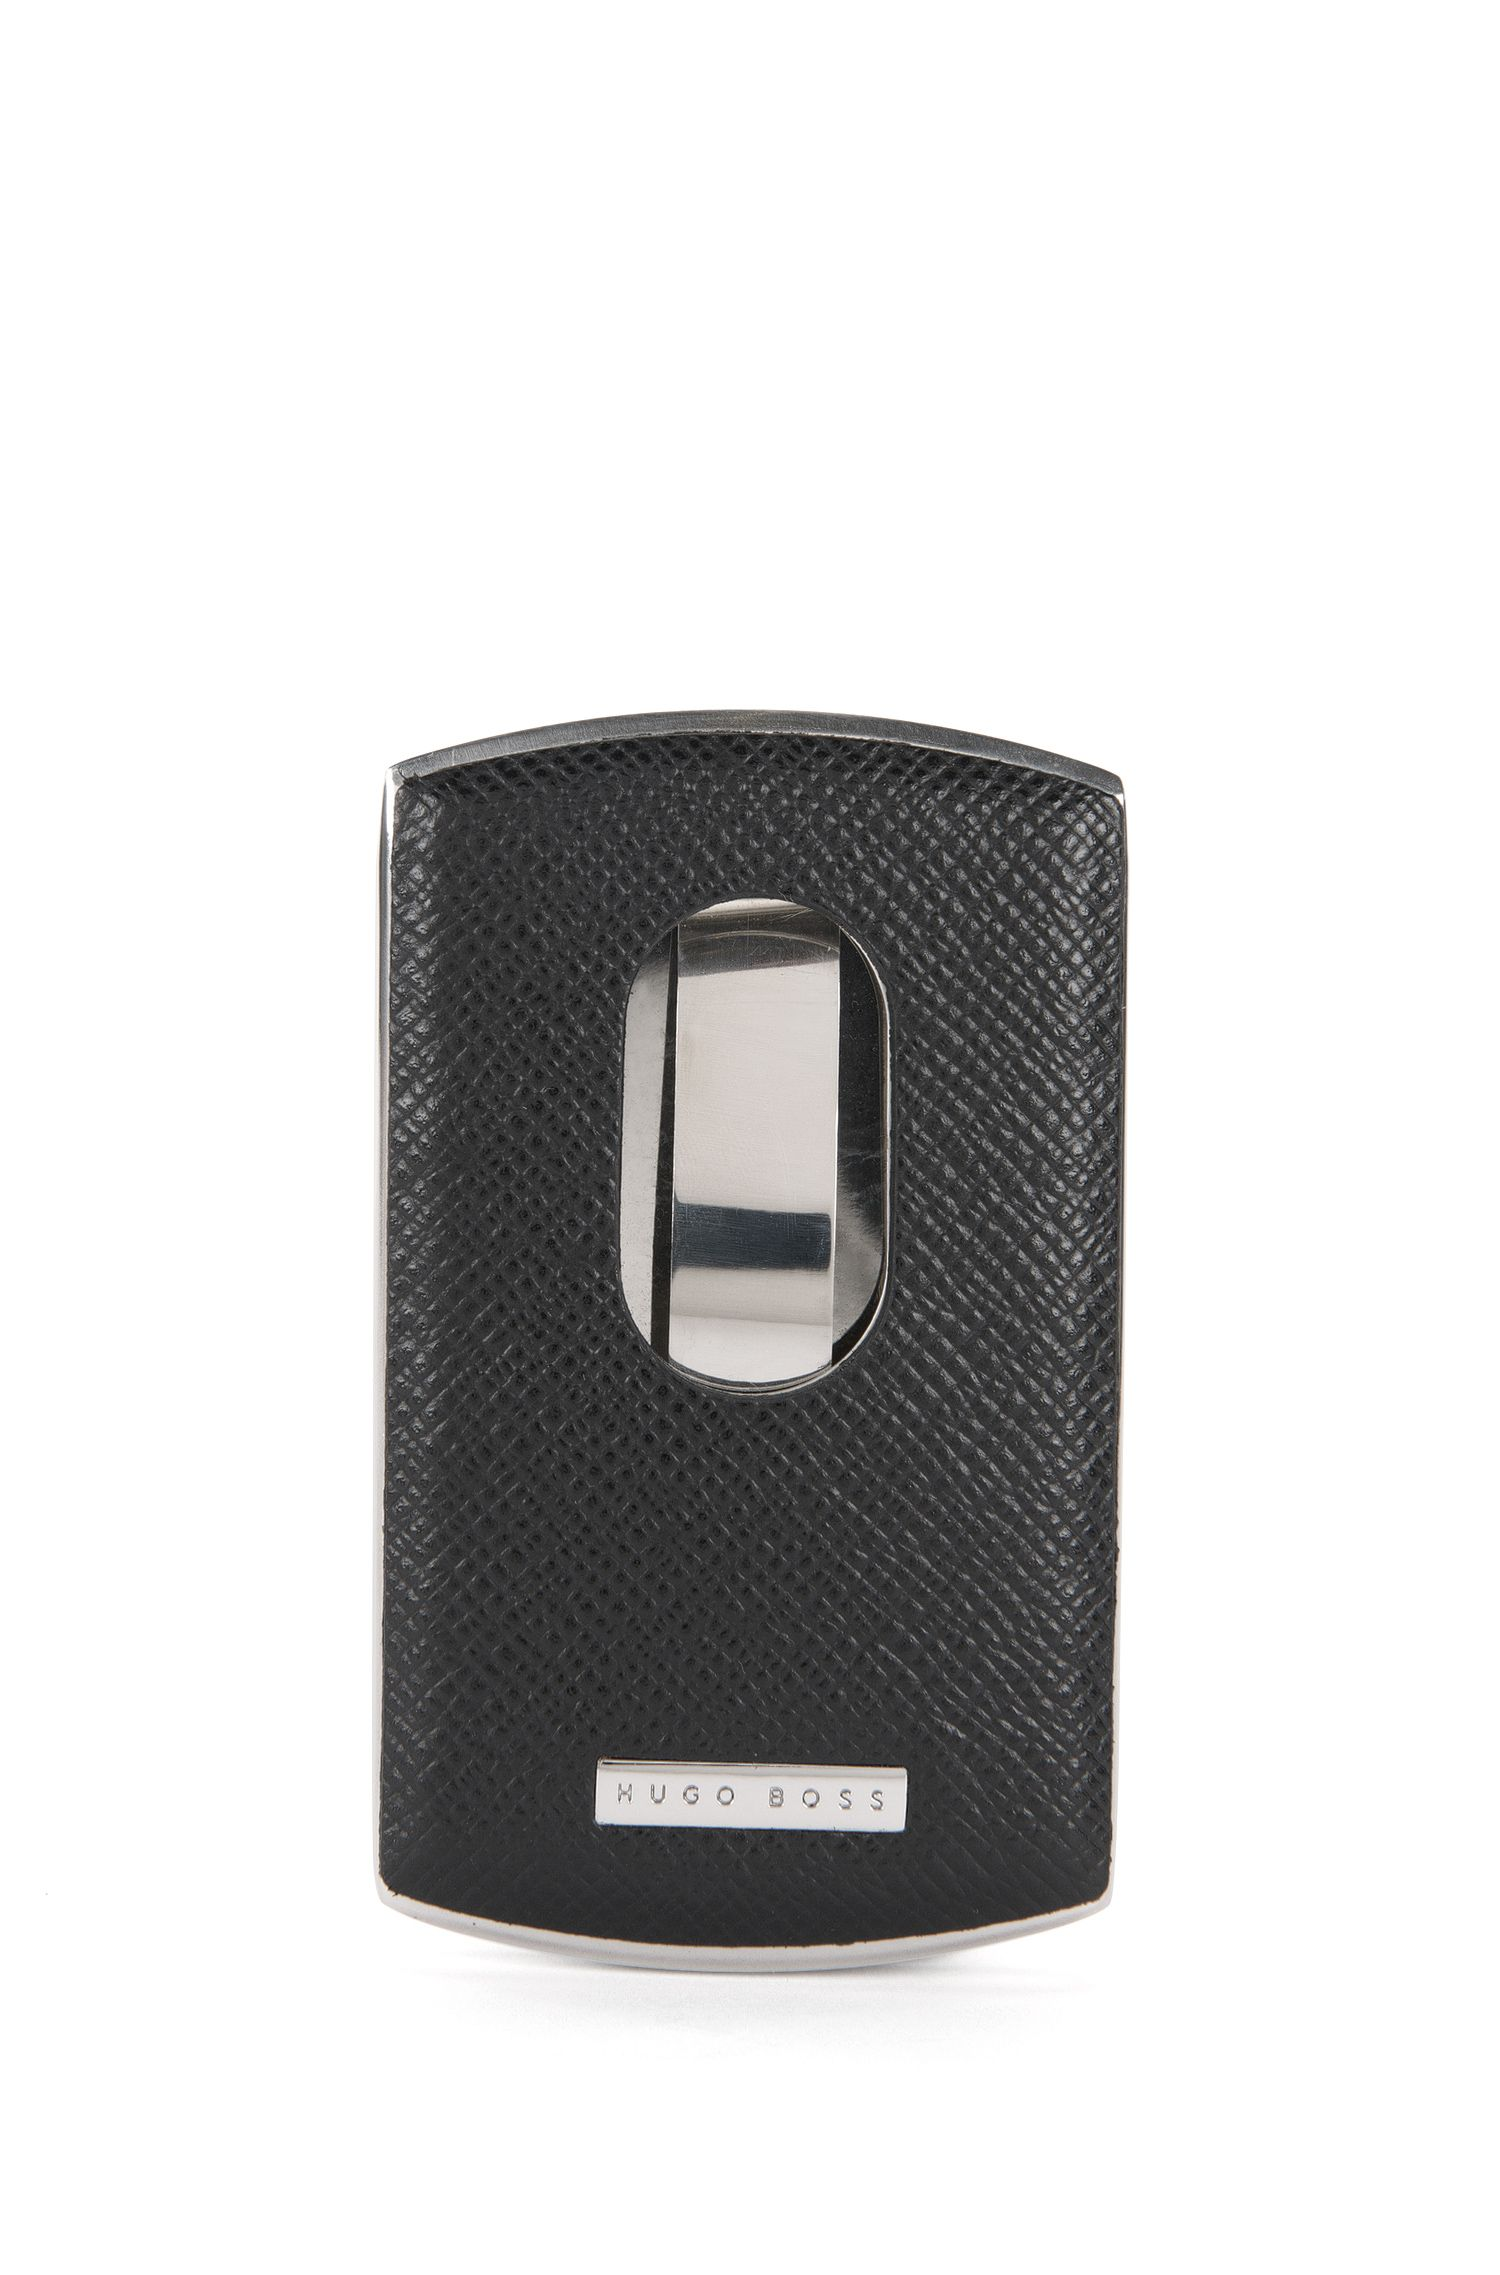 Signature Collection business card case in metal and leather